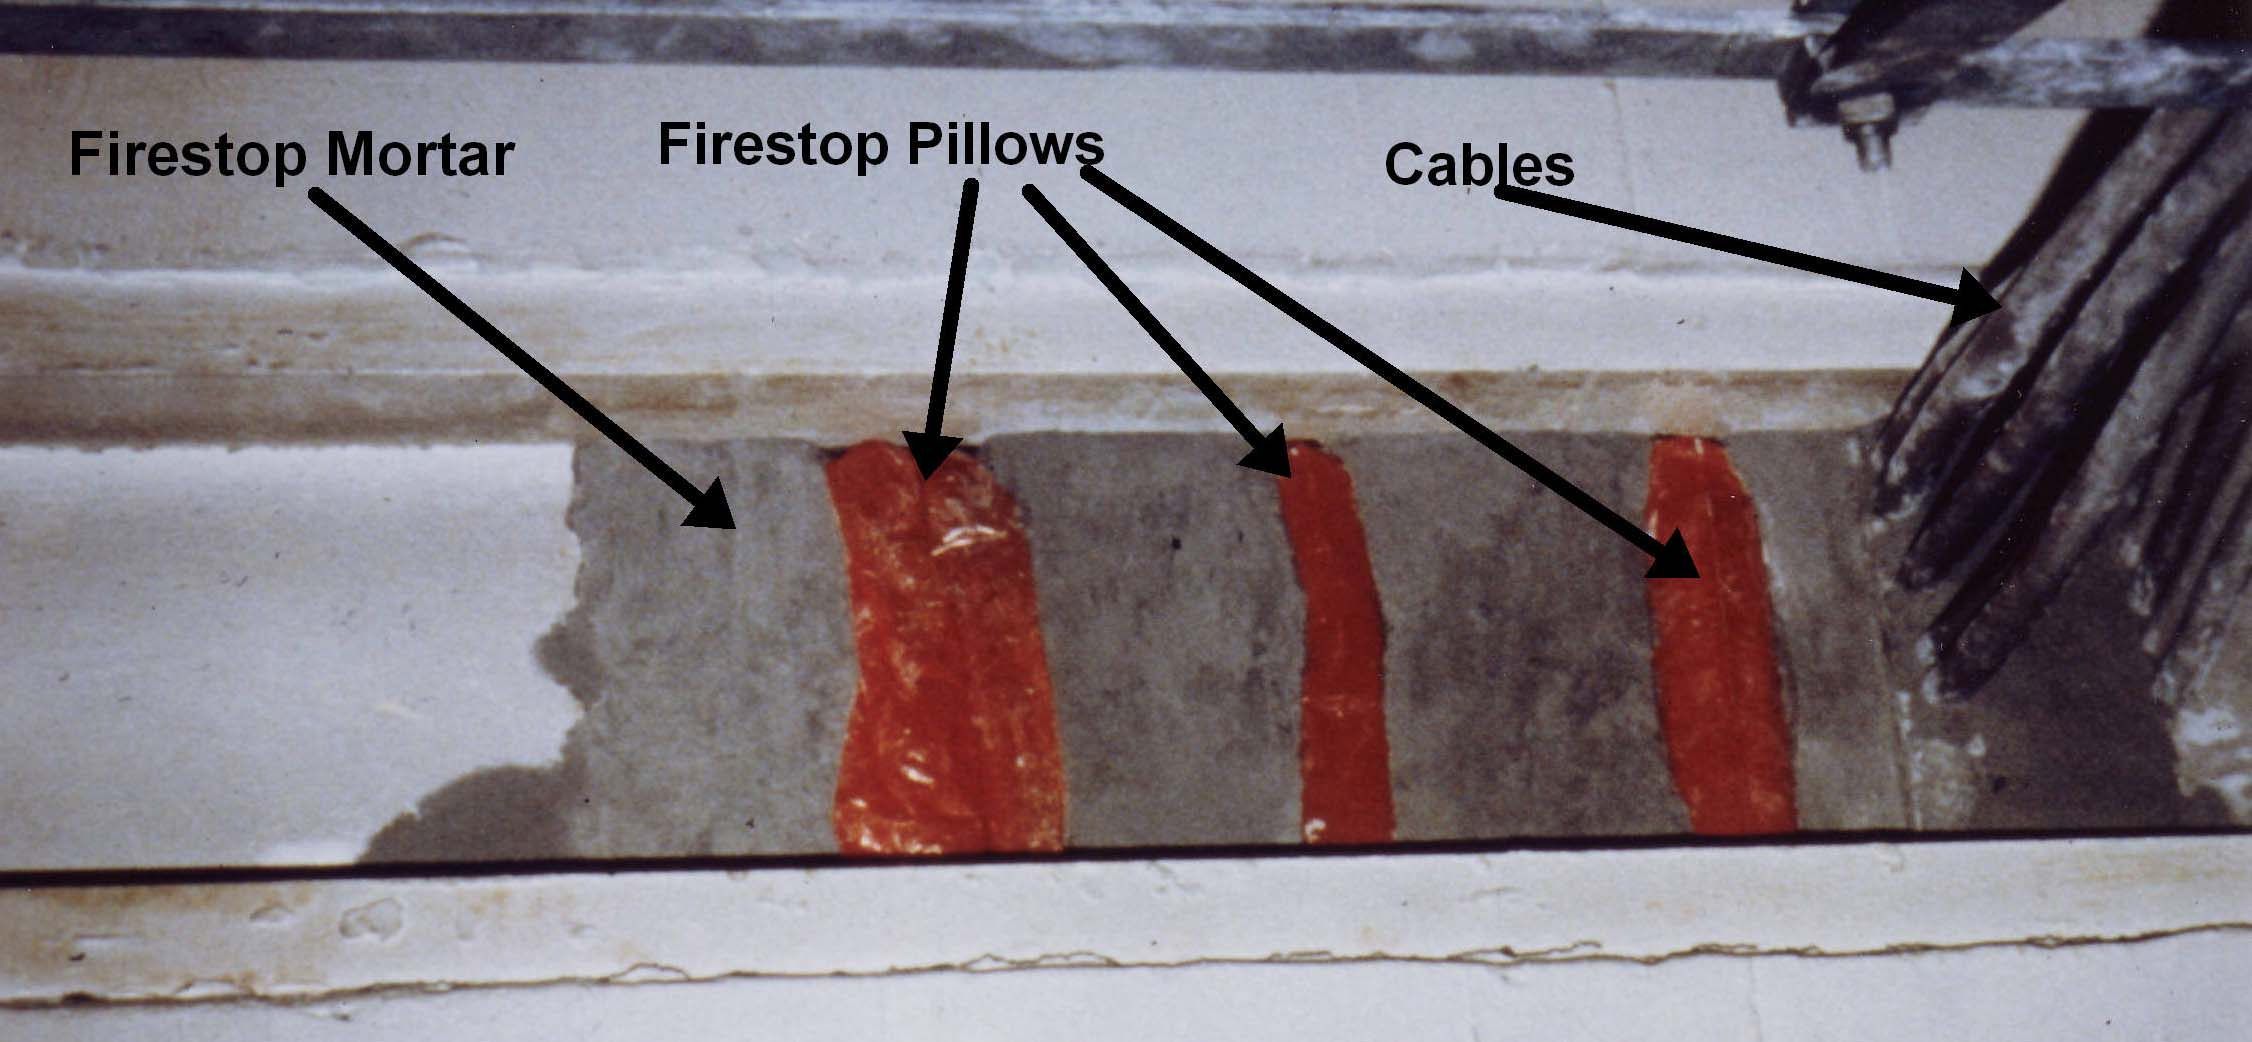 File Pillow Mortar Mod Jpg Wikipedia